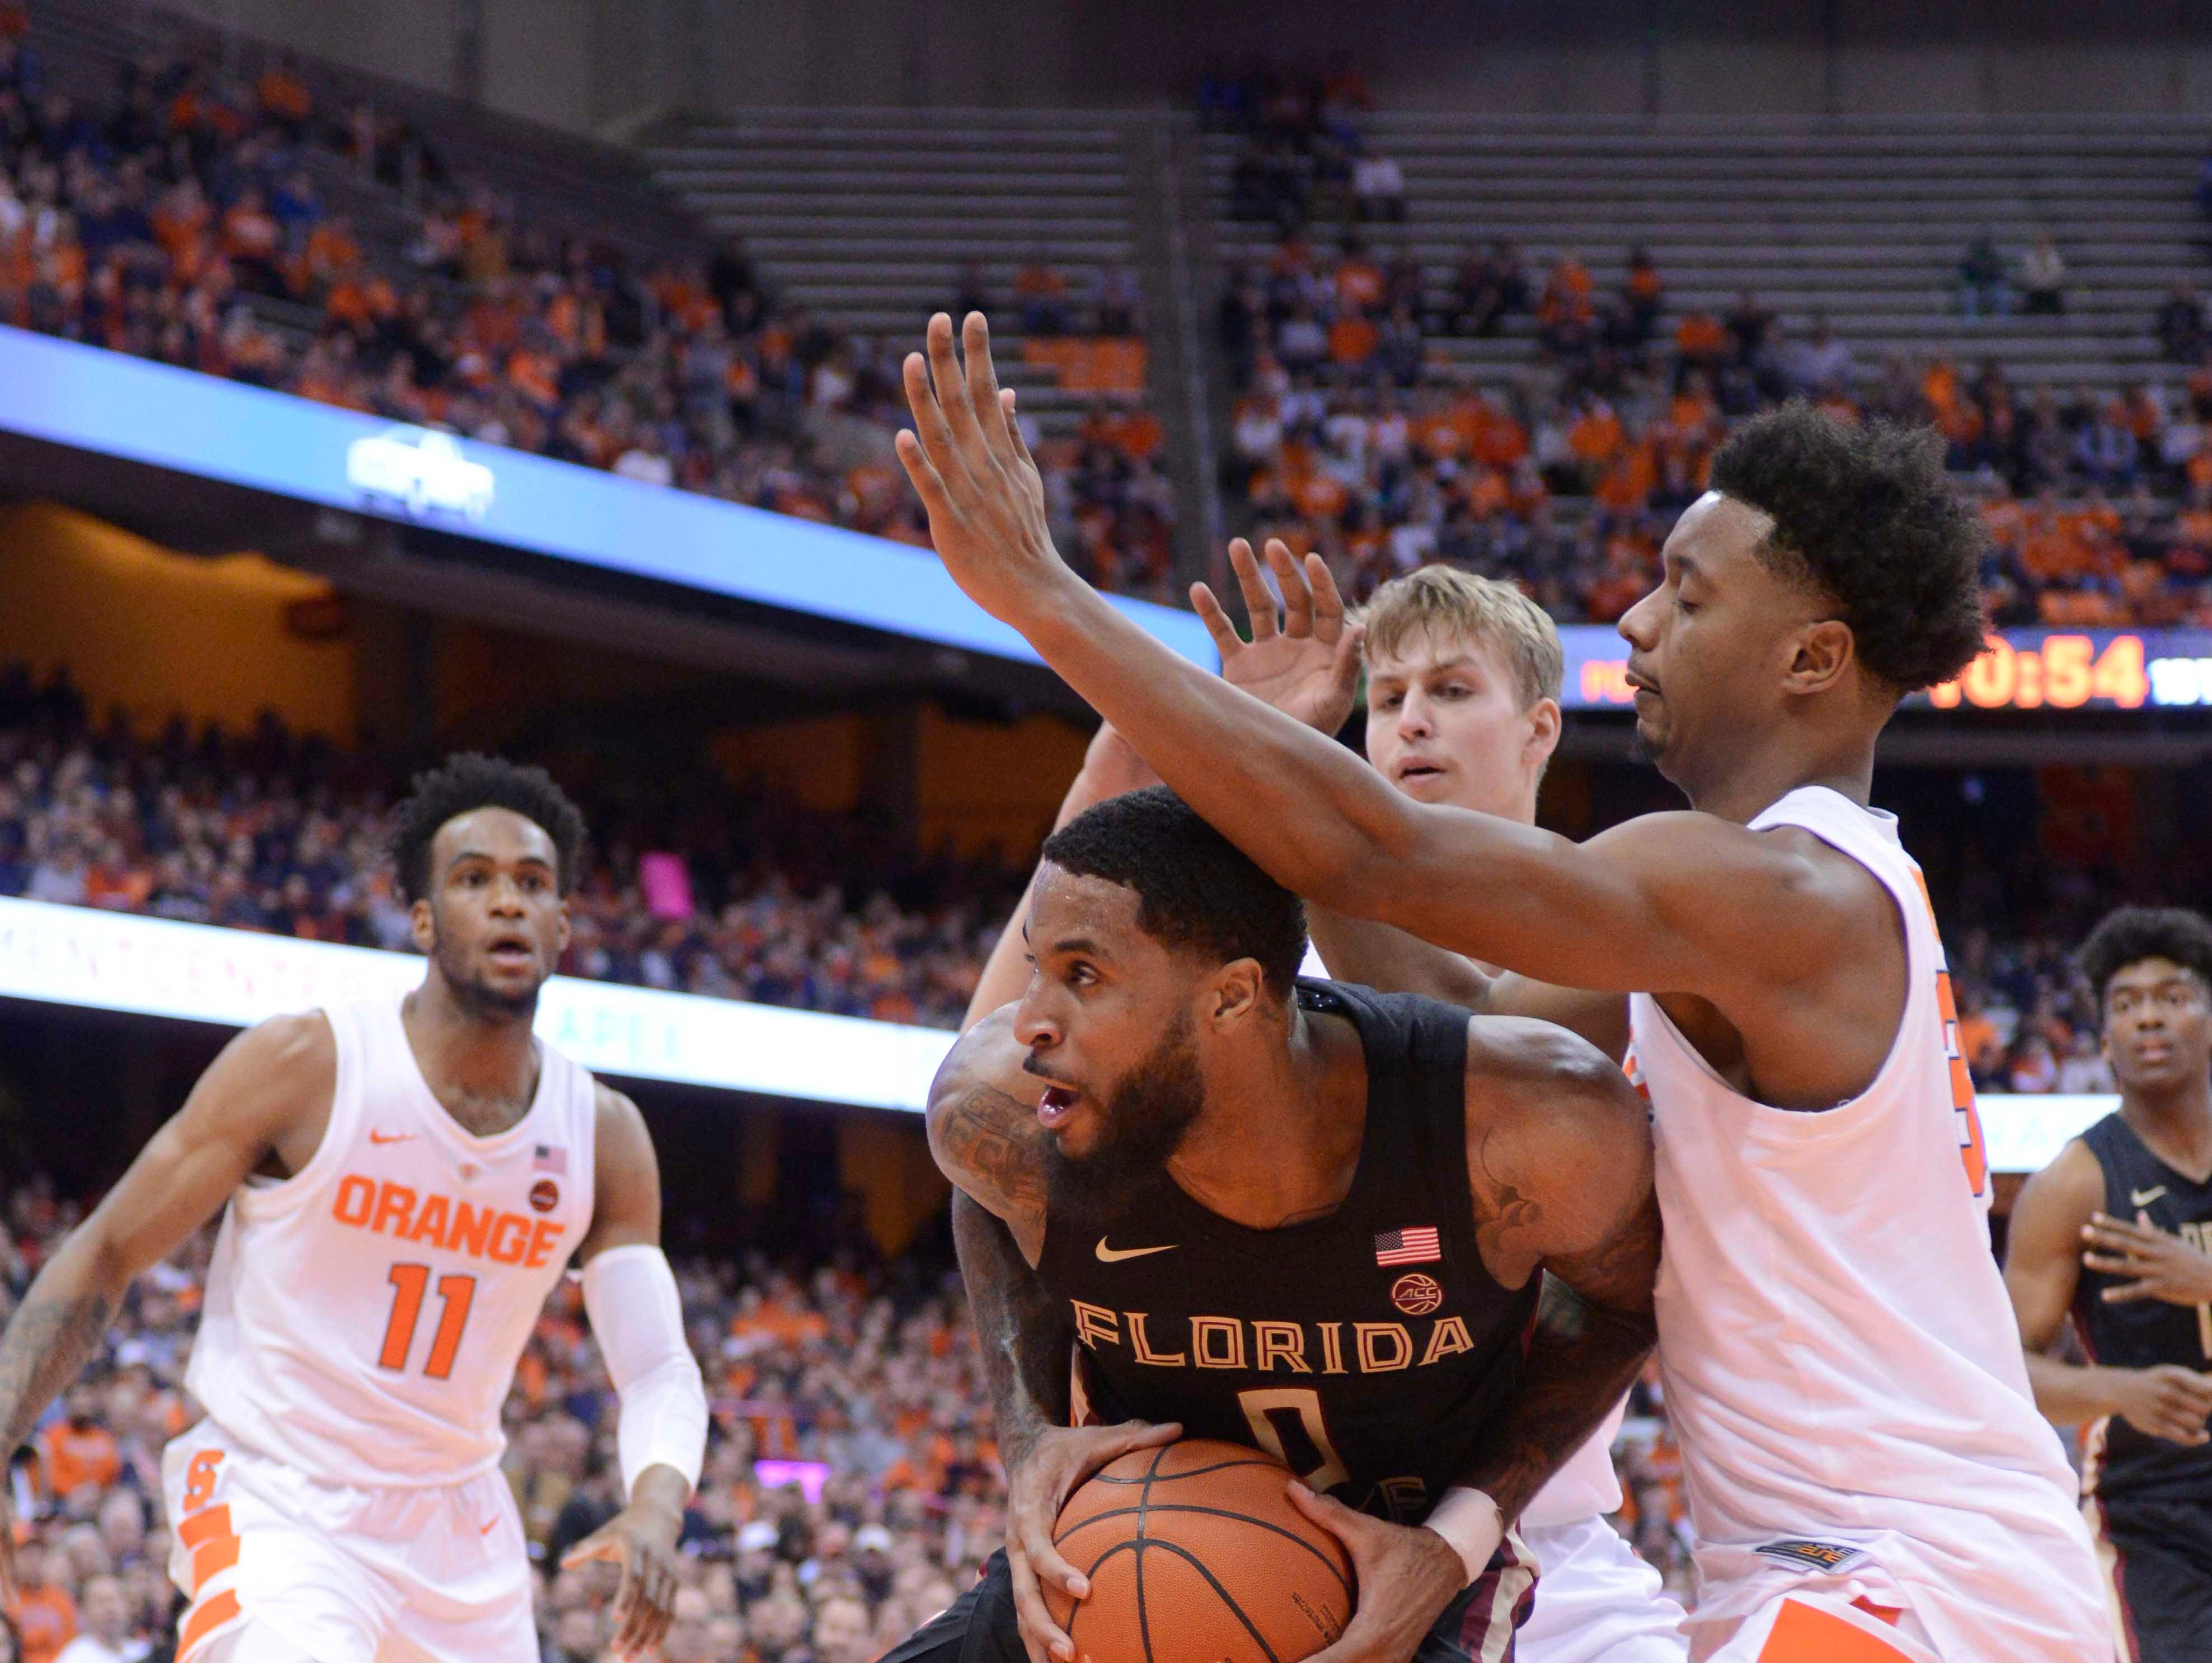 Feb 5, 2019; Syracuse, NY, USA; Florida State Seminoles forward Phil Cofer (0) grabs a rebound as Syracuse Orange forward Elijah Hughes (right) defends in the first half at the Carrier Dome. Mandatory Credit: Mark Konezny-USA TODAY Sports